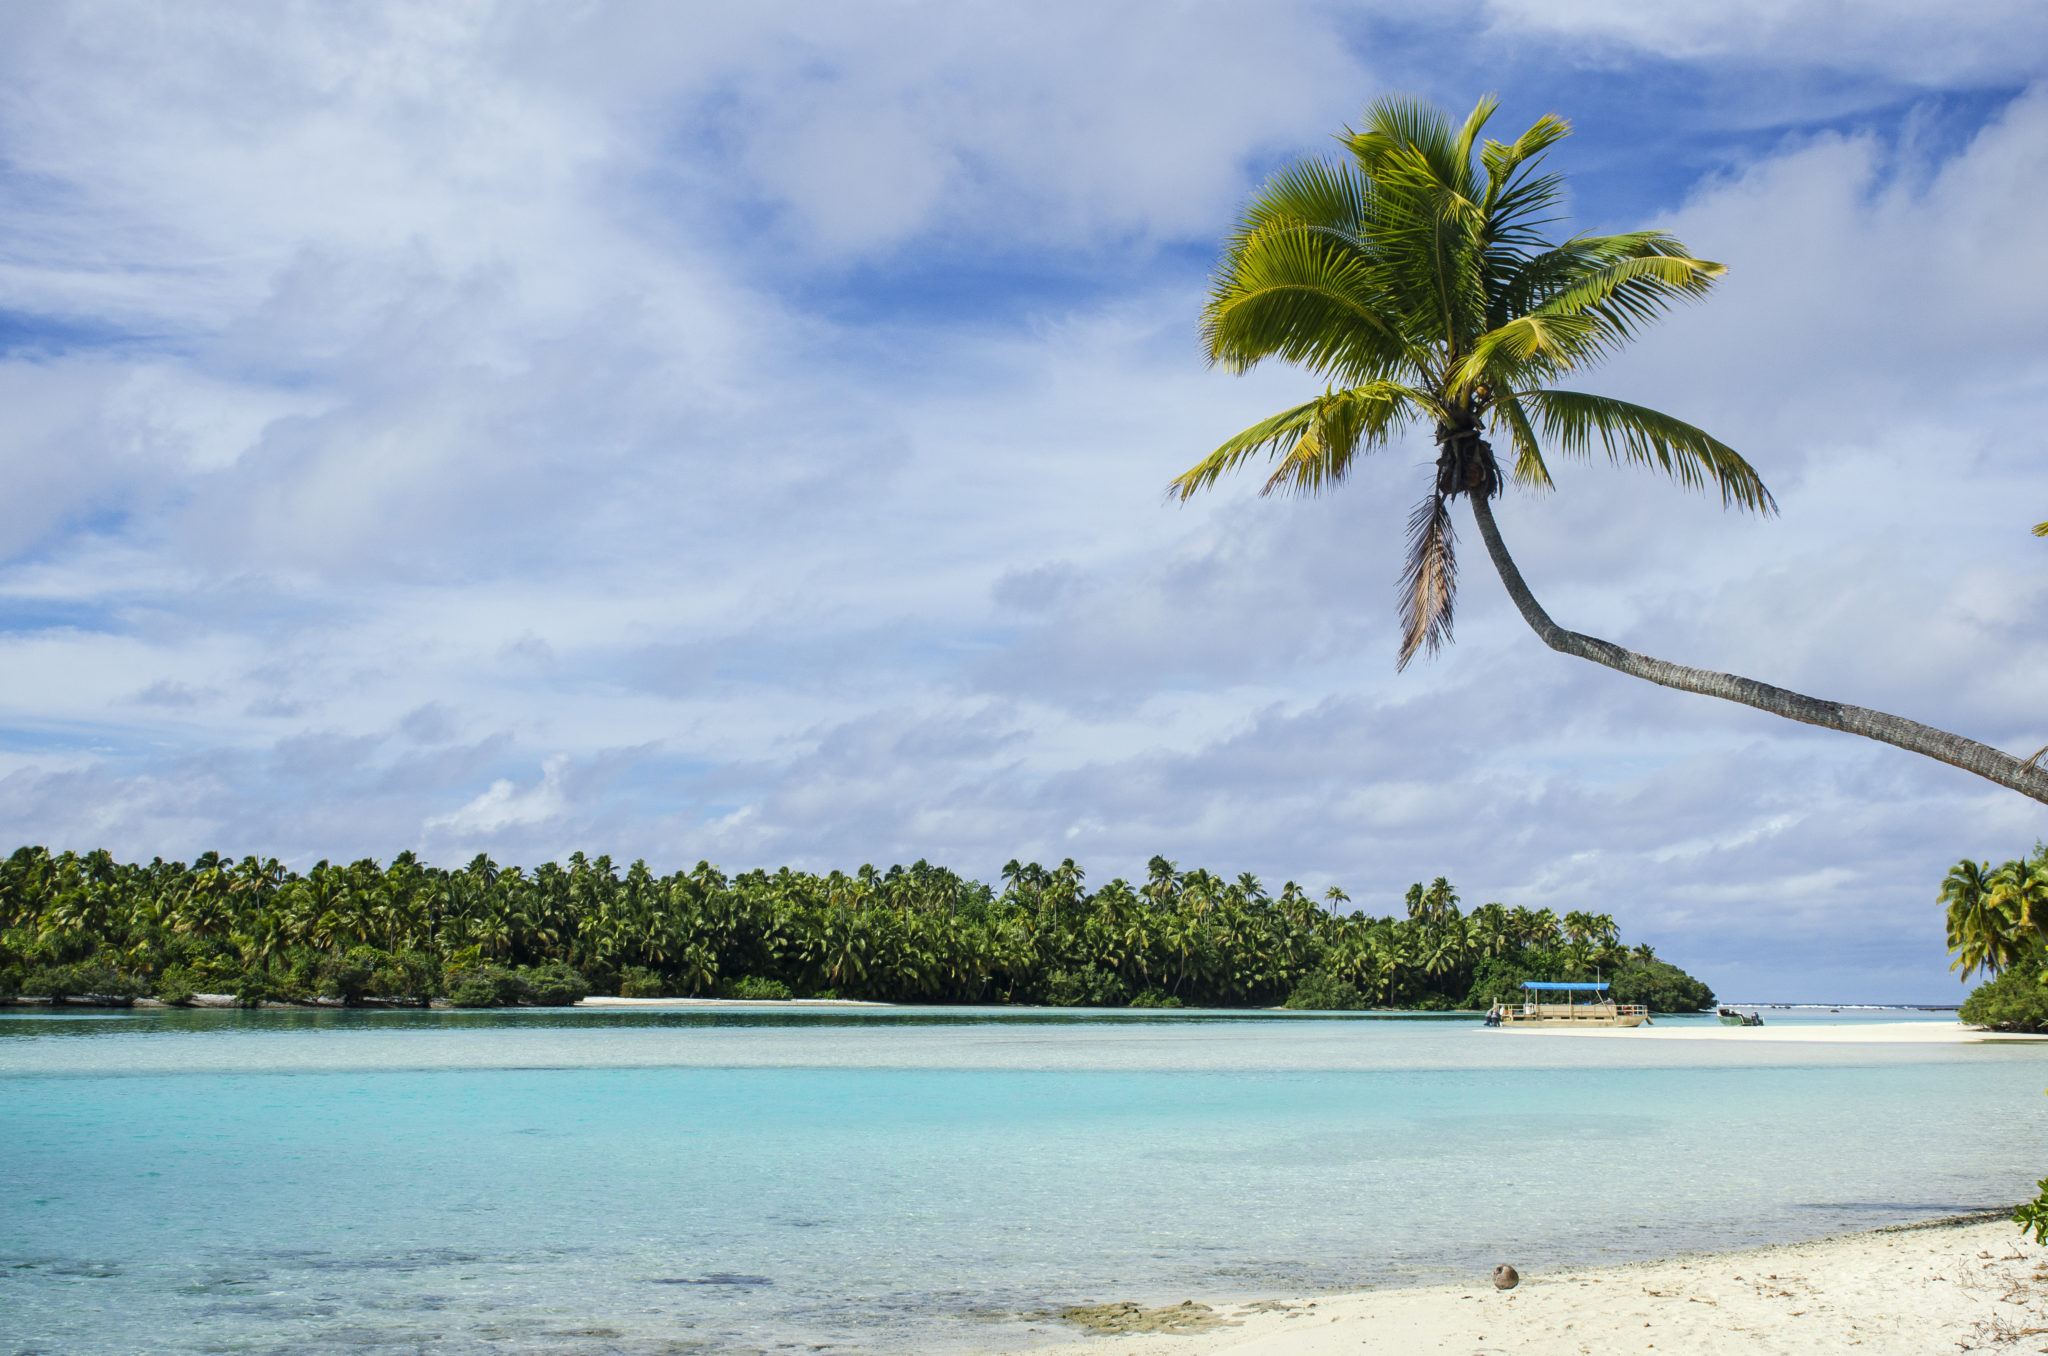 Could a palmtree be more perfect like the ones on Aitutaki, Cook Islands?